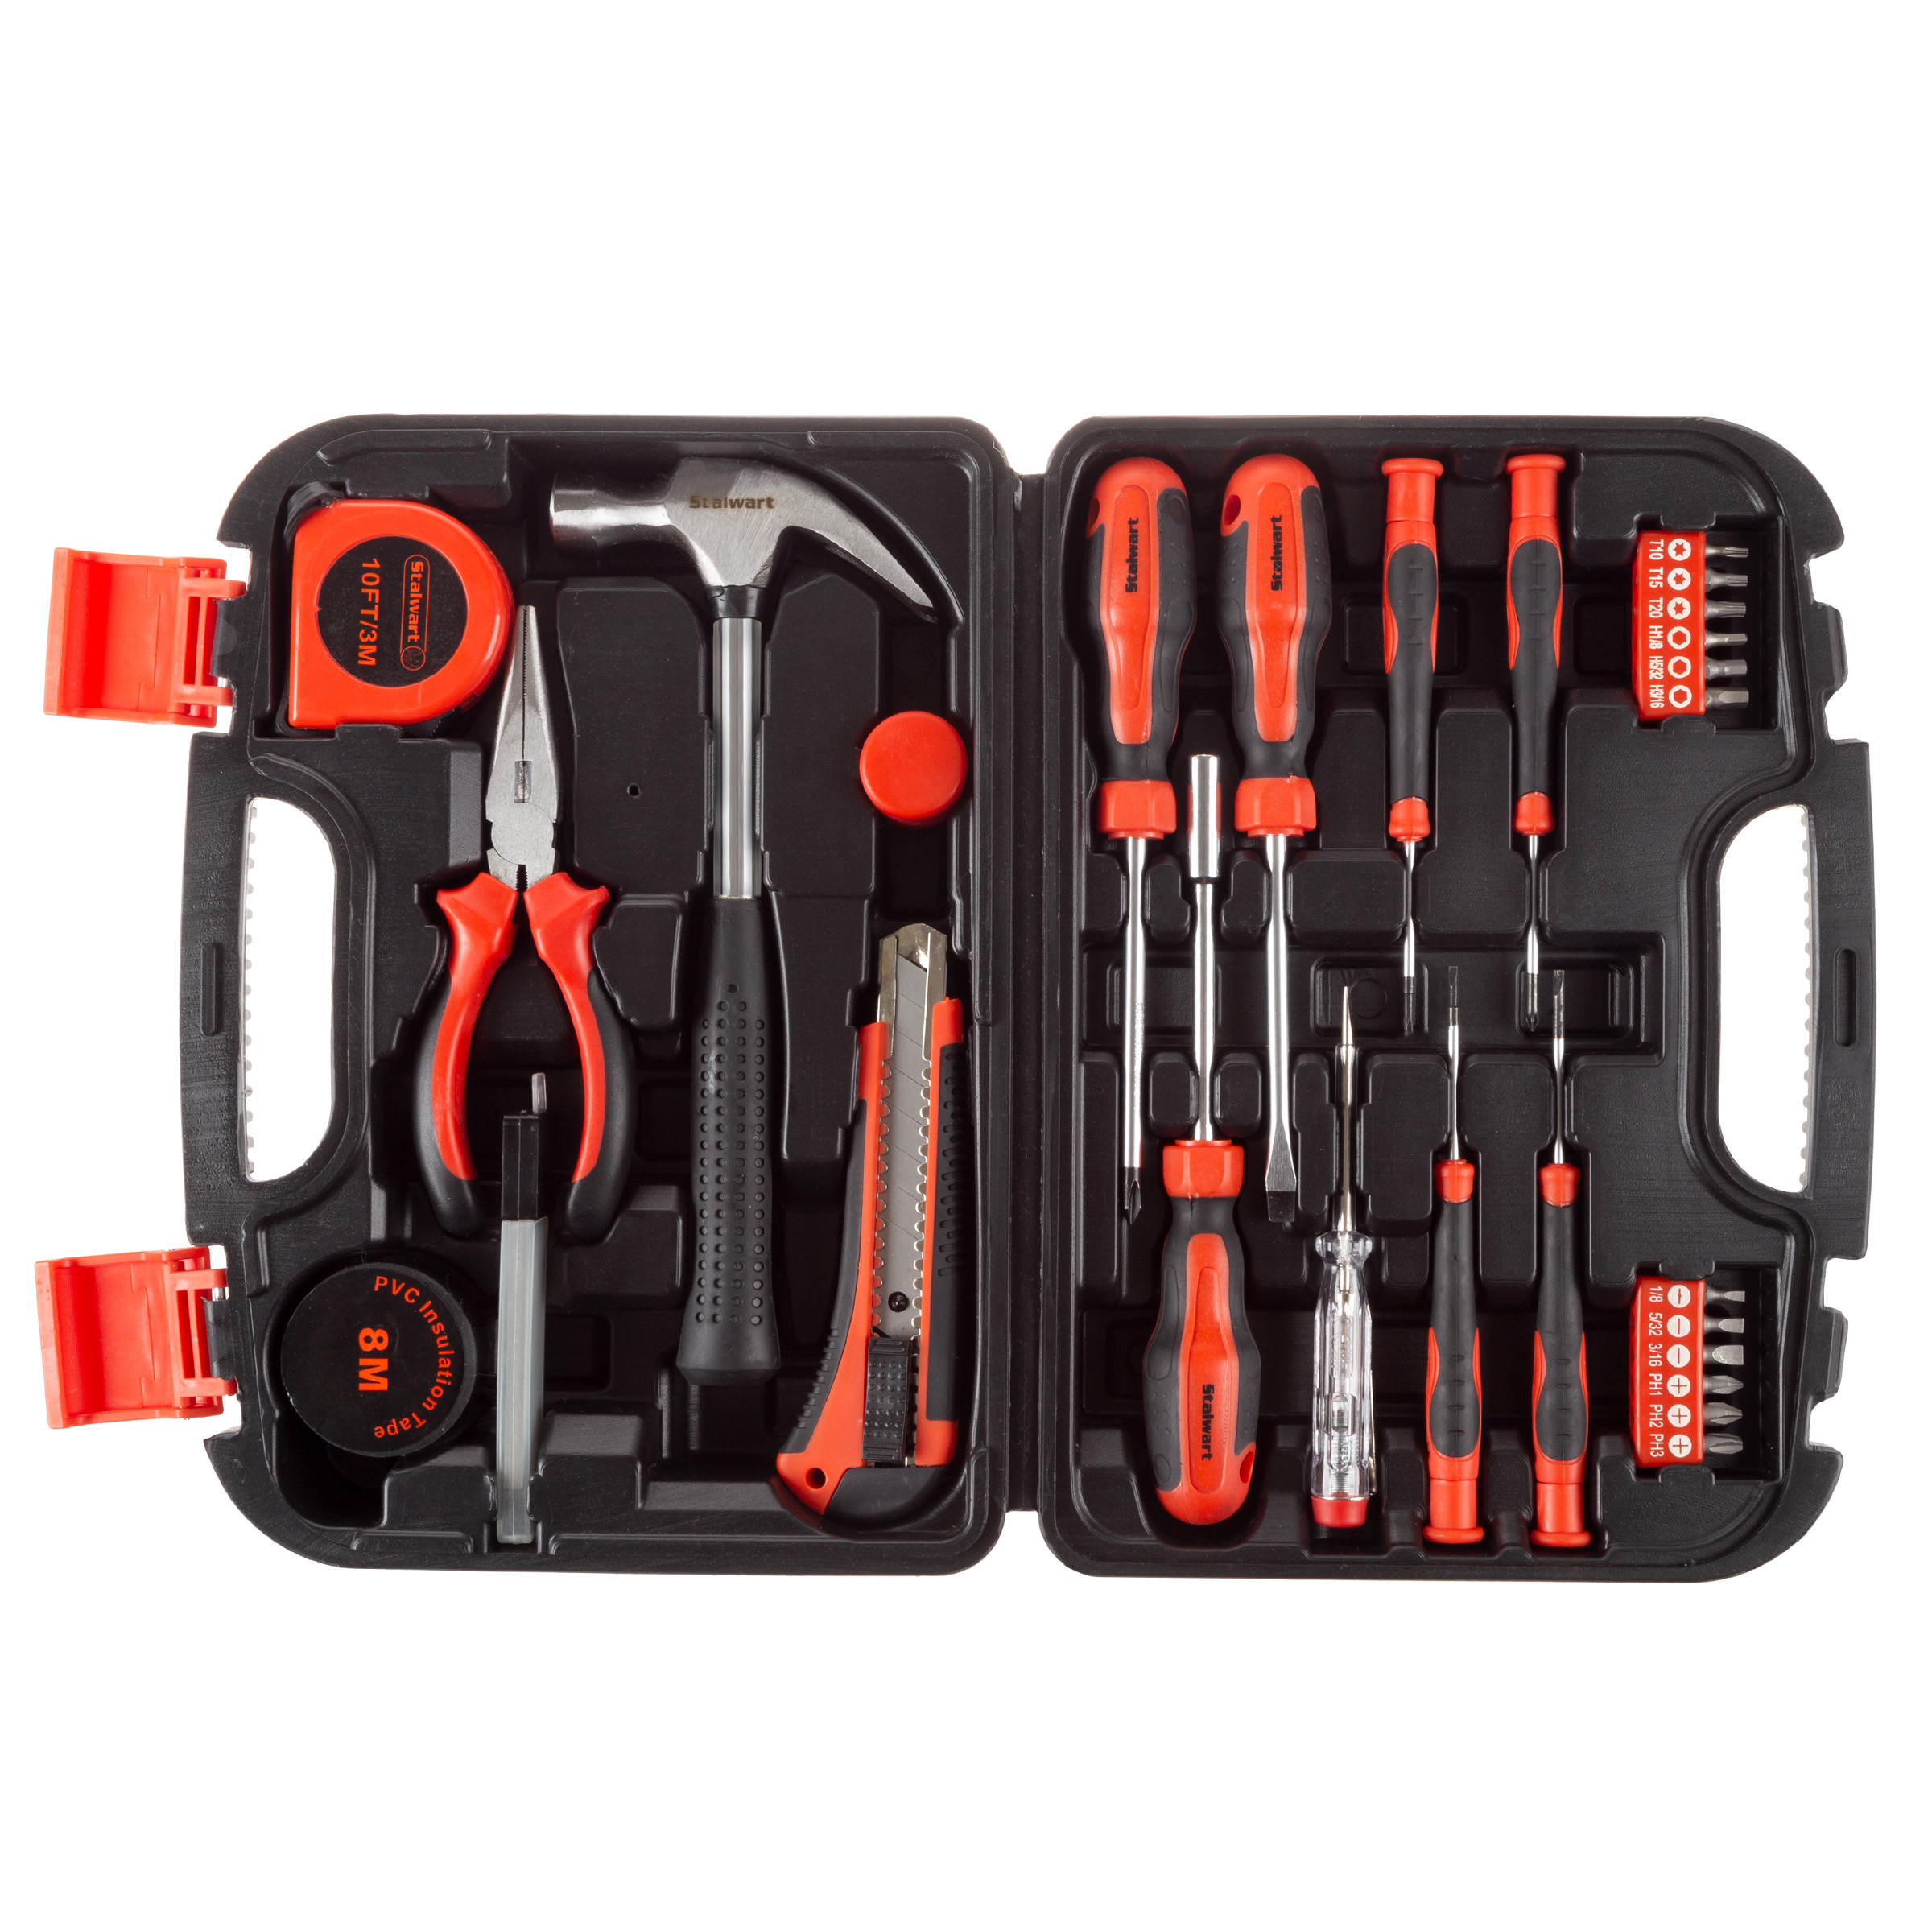 Tool Kit – 36 Heat-Treated Pieces with Carrying Case by Stalwart - Walmart.com